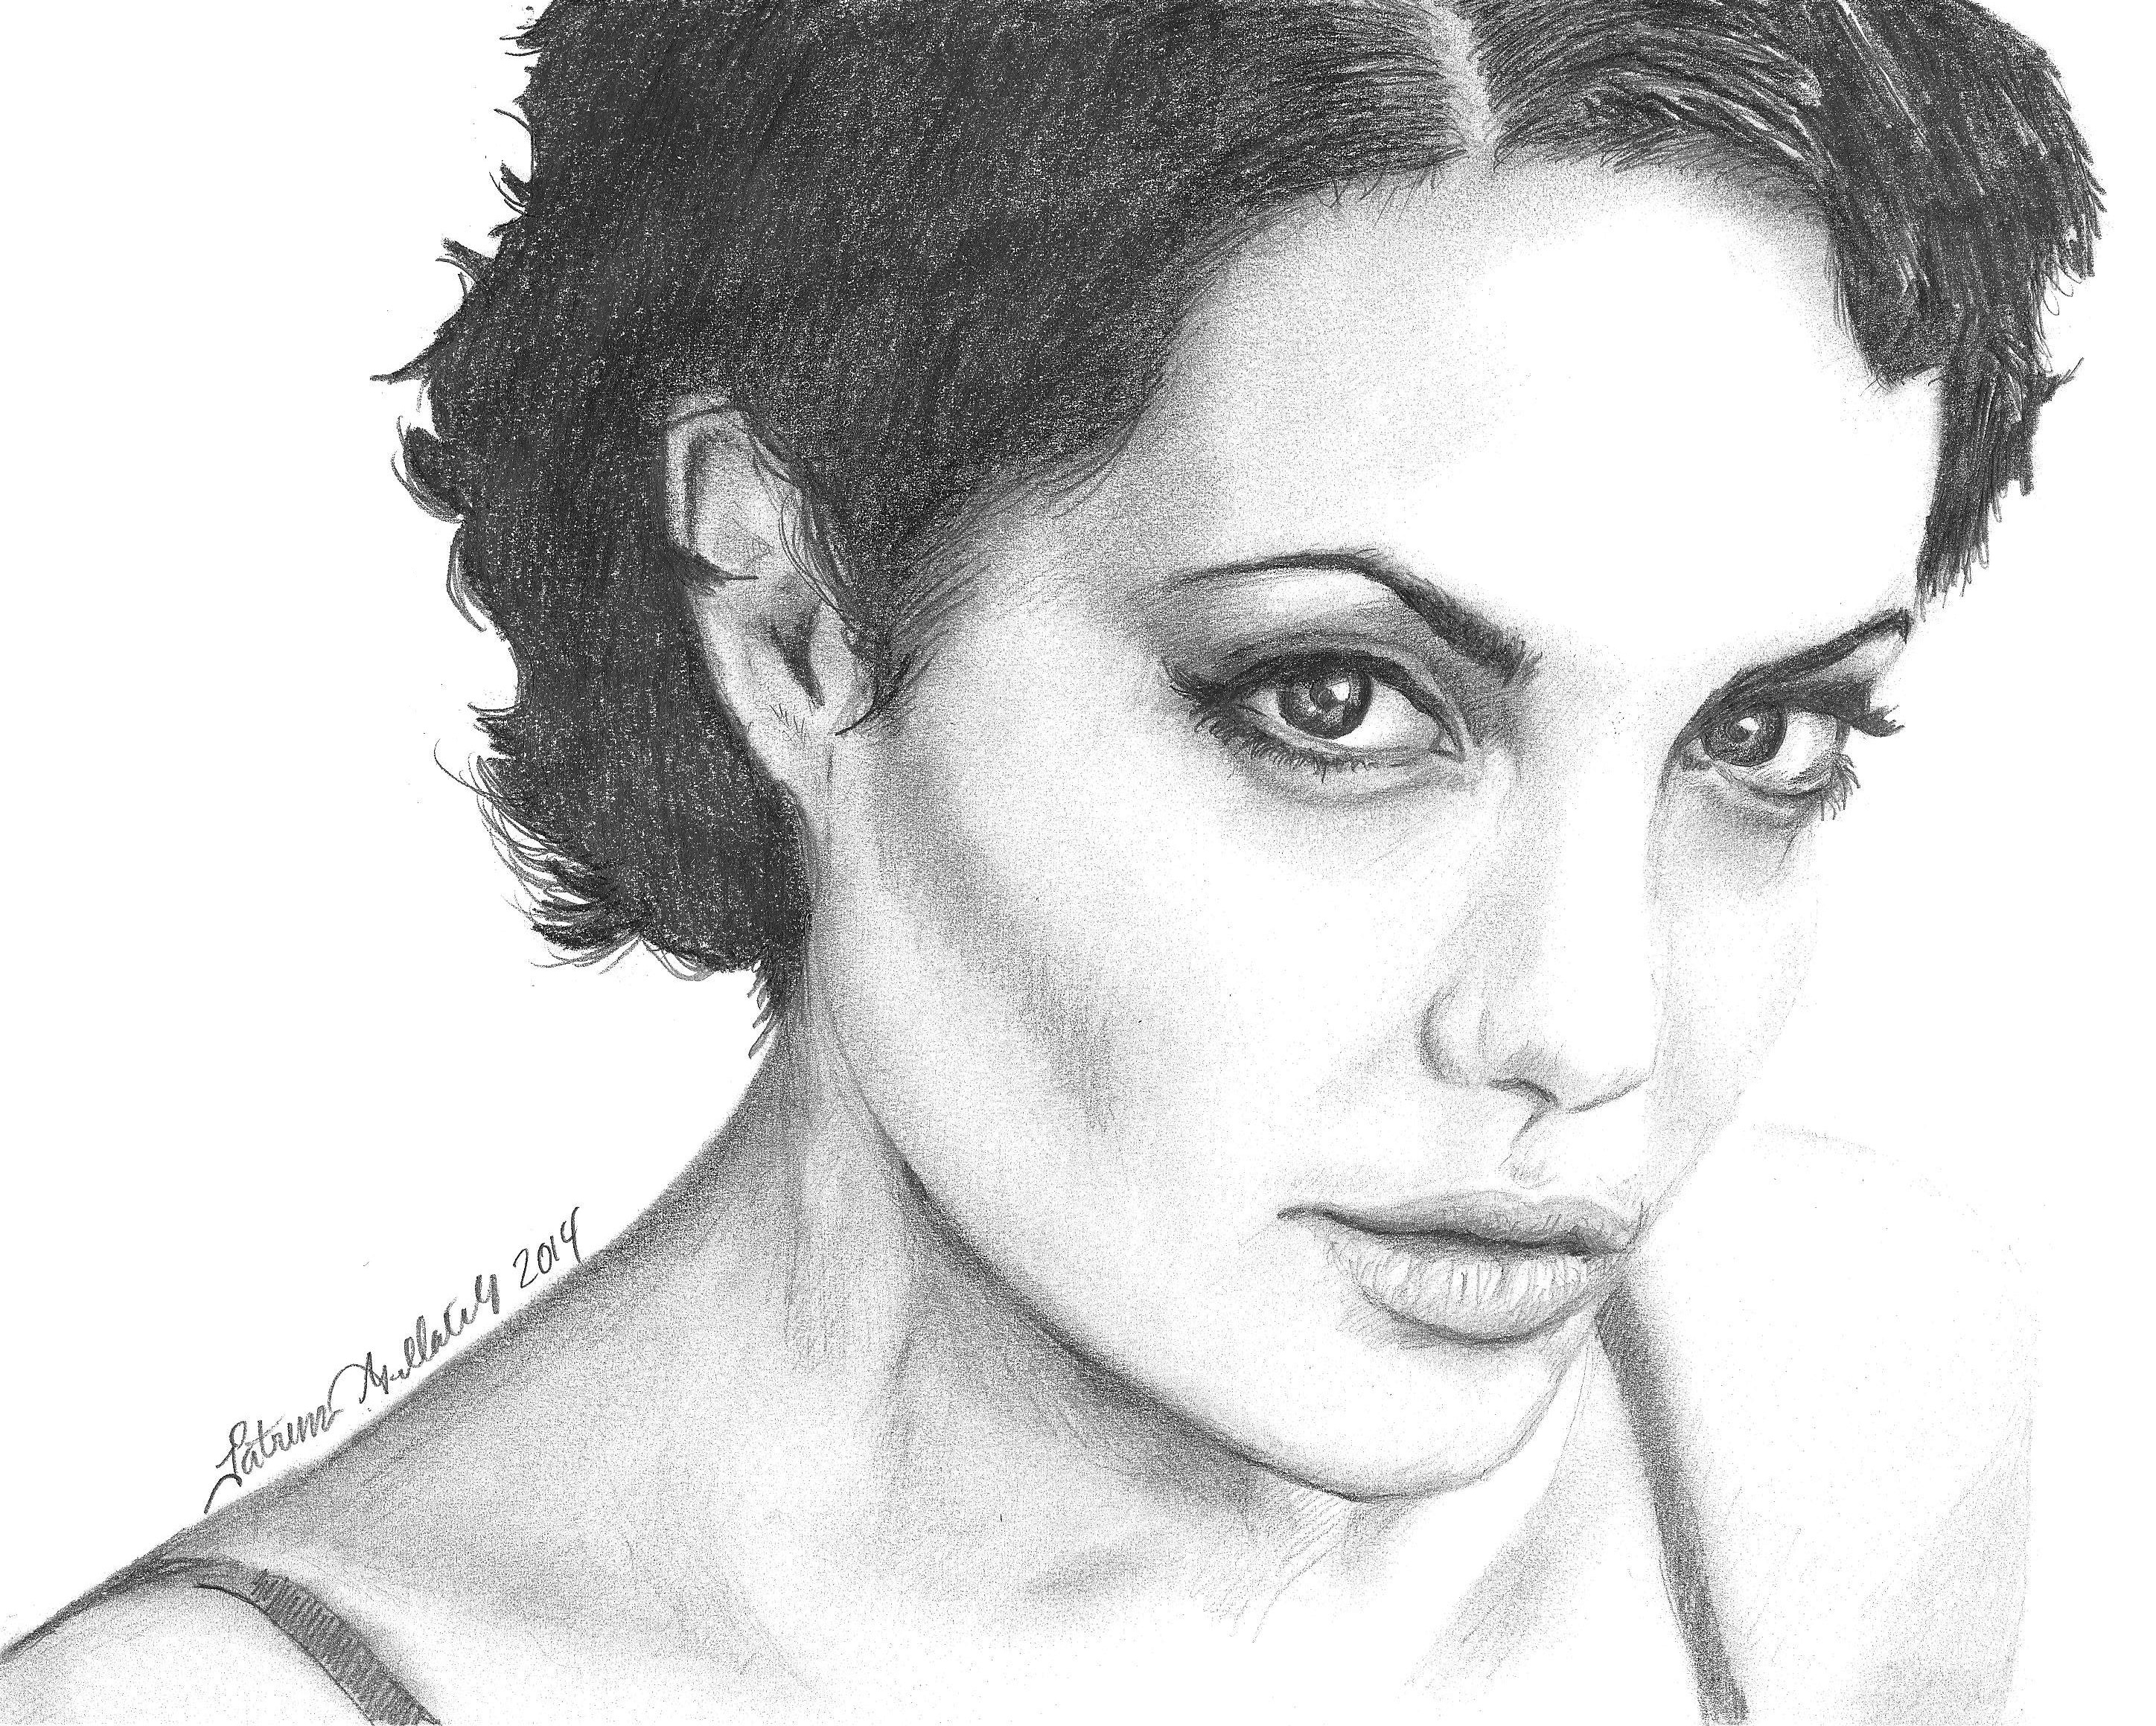 Angelina Jolie Sketch By Funksoulfather Angelina Jolie Sketch By  Funksoulfather